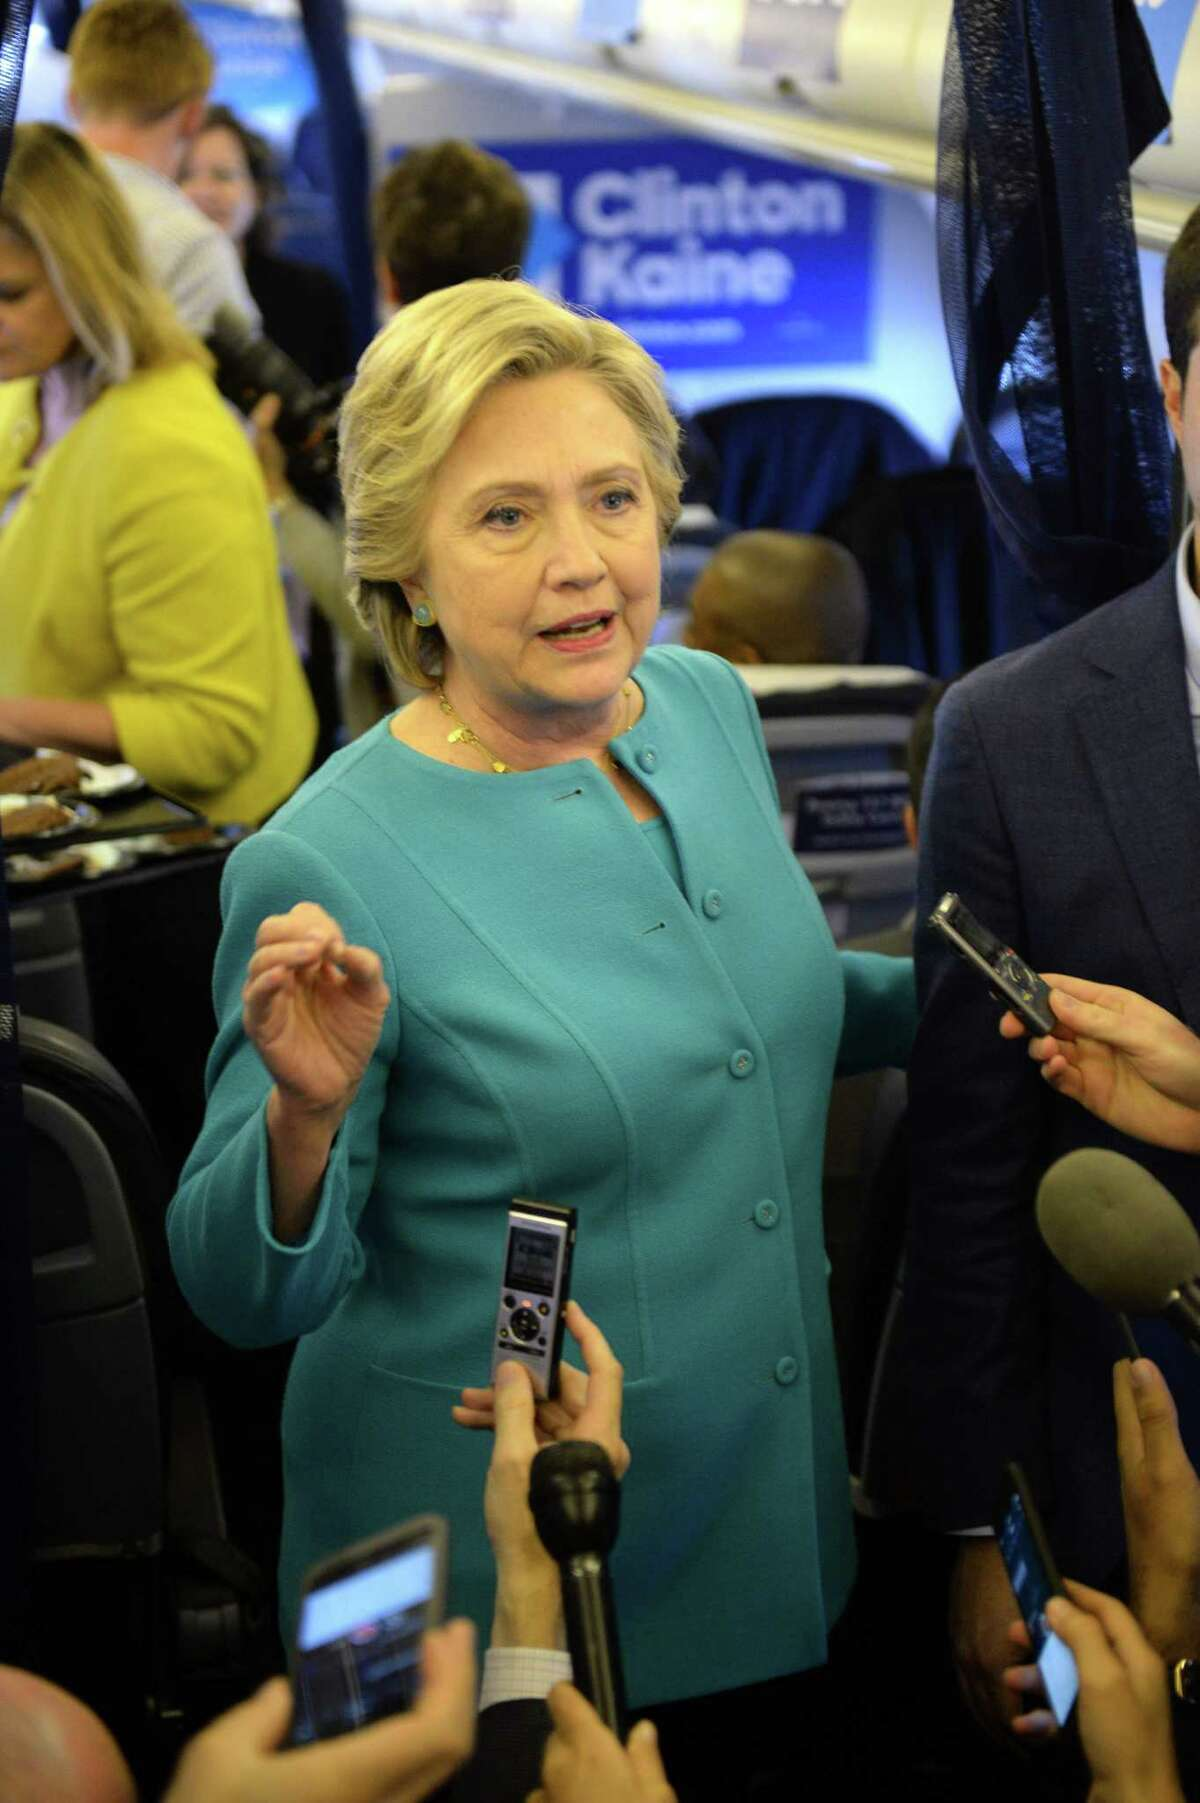 Democratic presidential nominee Hillary Clinton talks with the press on her plane while en-route from Tampa, Florida to Laguardia Airport in New York, October 26, 2016. / AFP PHOTO / Robyn BECKROBYN BECK/AFP/Getty Images